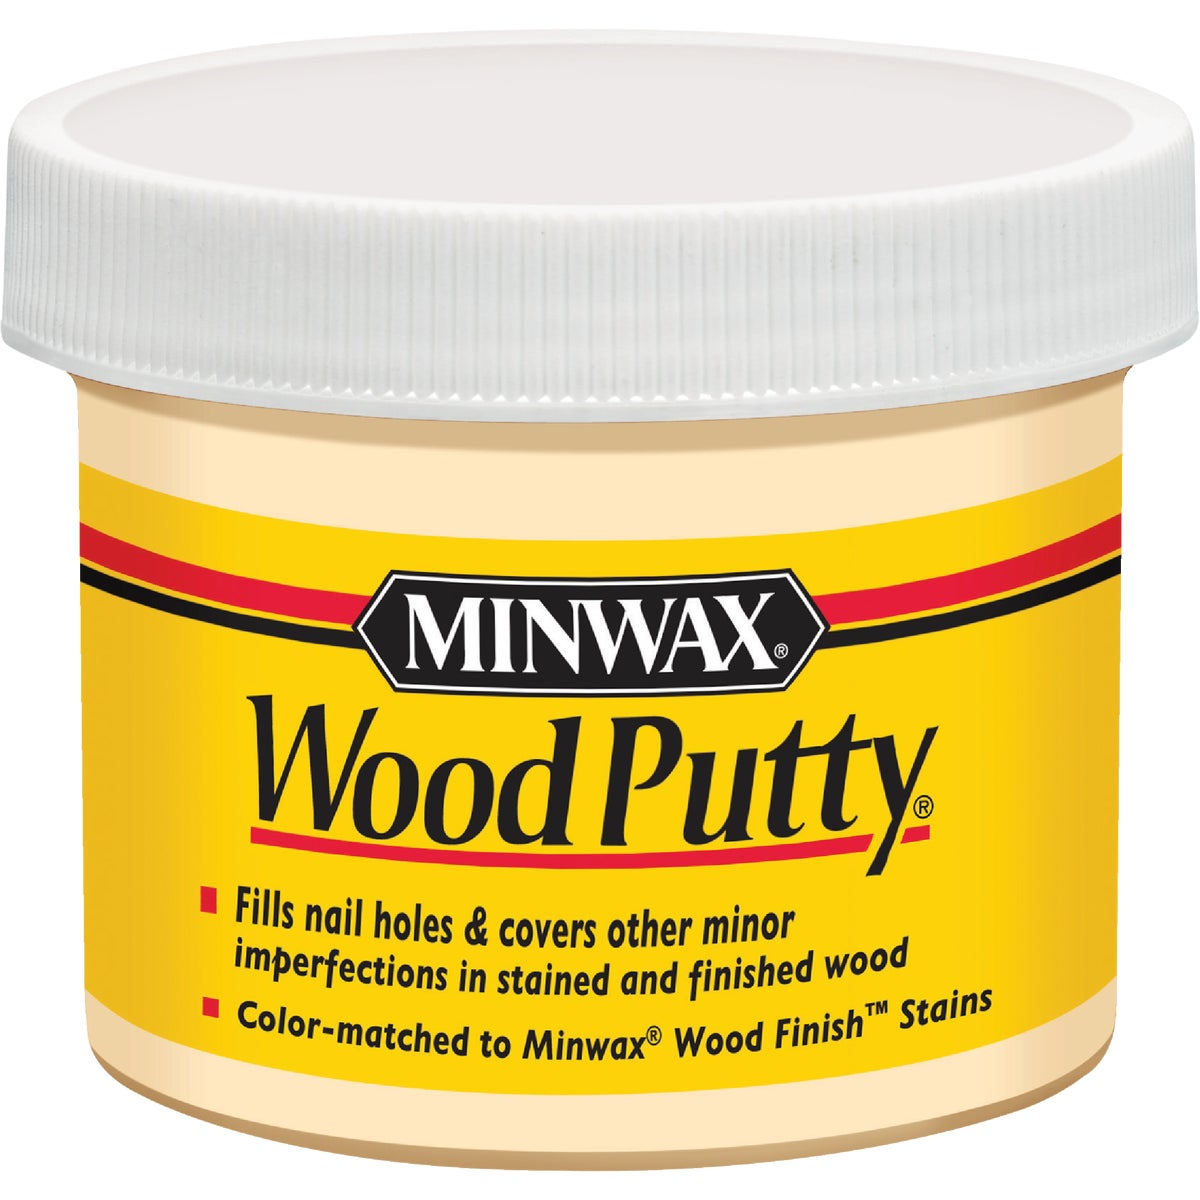 NATURAL PINE WOOD PUTTY - 13610 by Minwax Company